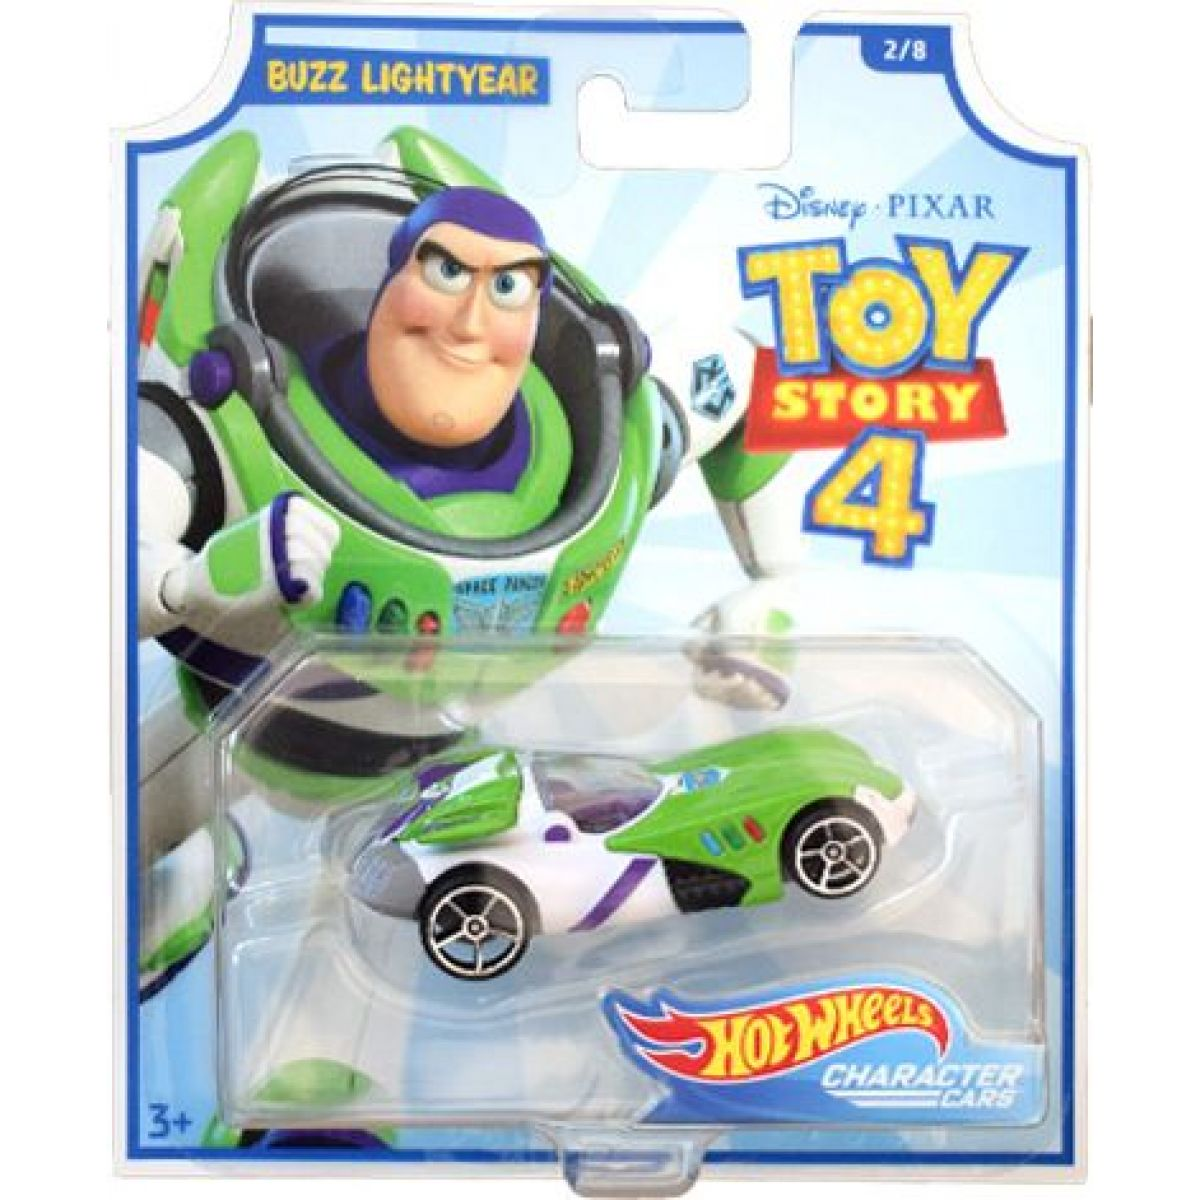 Hot Wheels tematické auto Toy story Buzz Lightyear